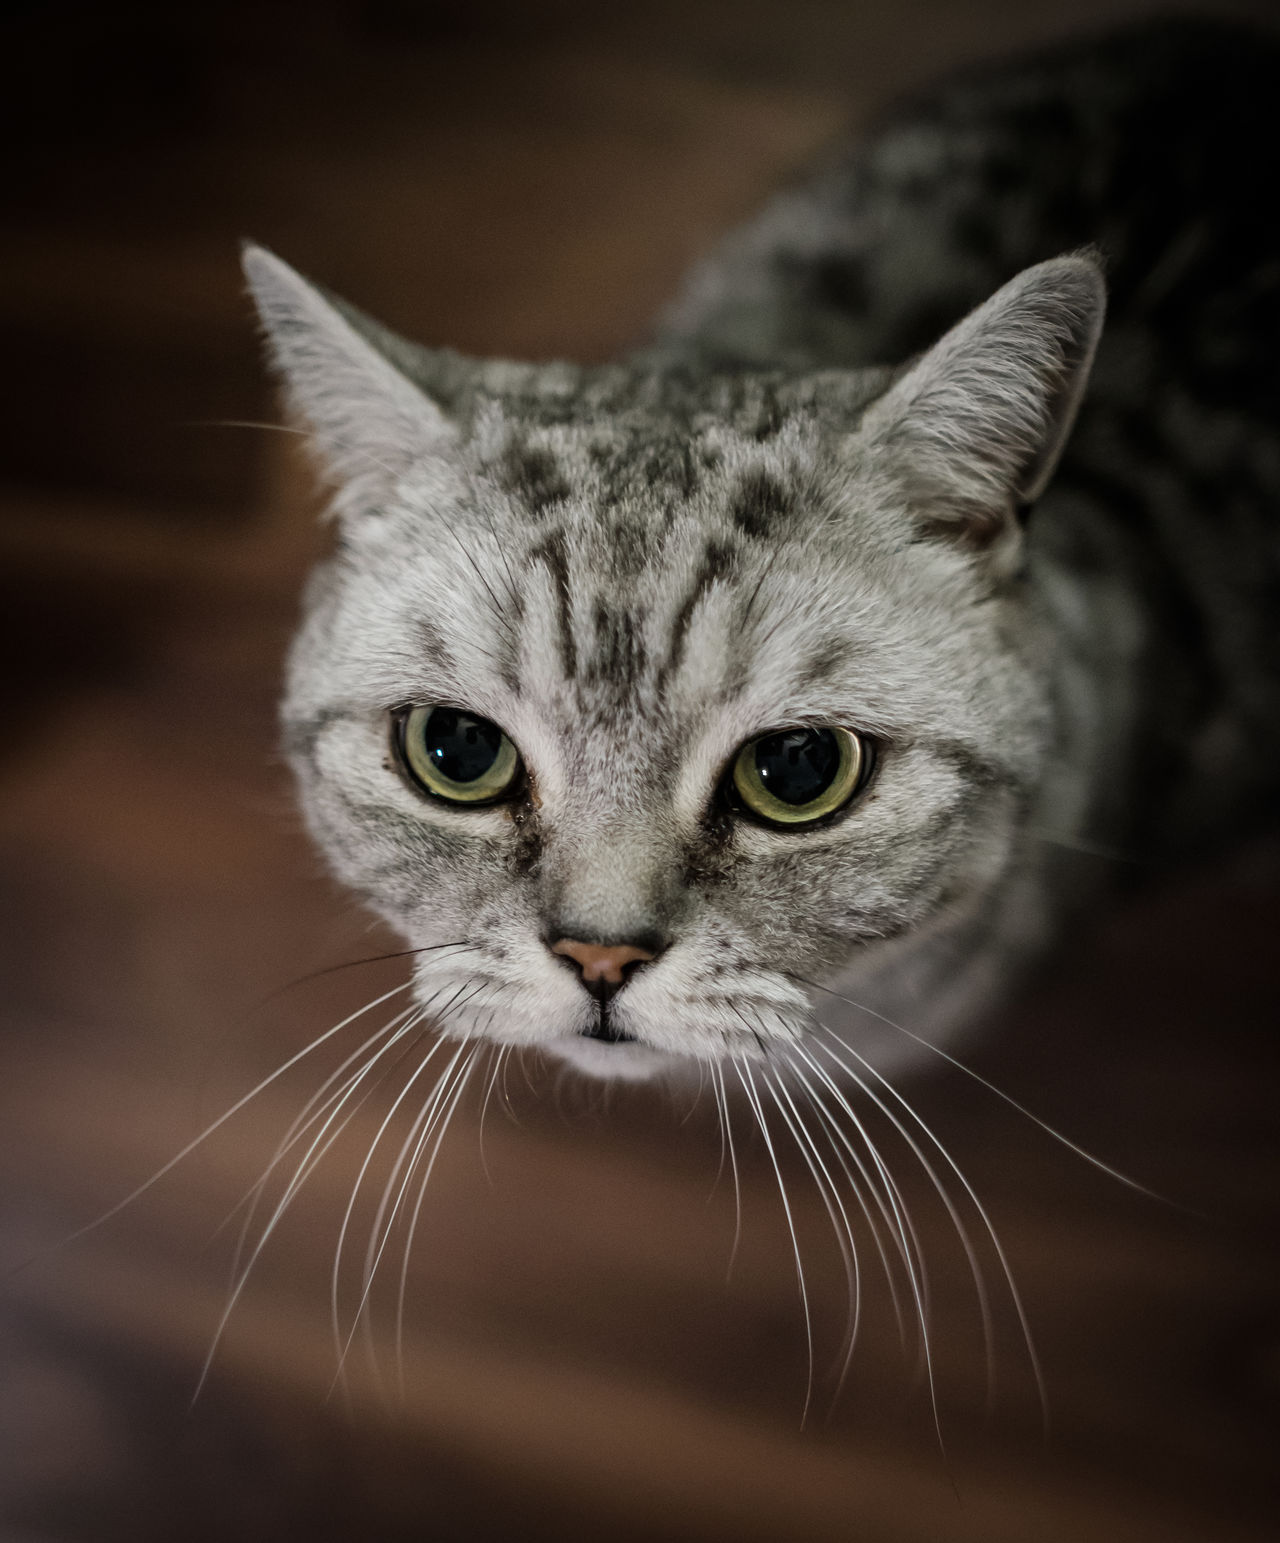 McLovin Animal Themes British Shorthair Close-up Day Domestic Animals Domestic Cat Feline Focus On Foreground Looking At Camera Mammal No People One Animal Outdoors Pets Portrait Tomcat Whisker